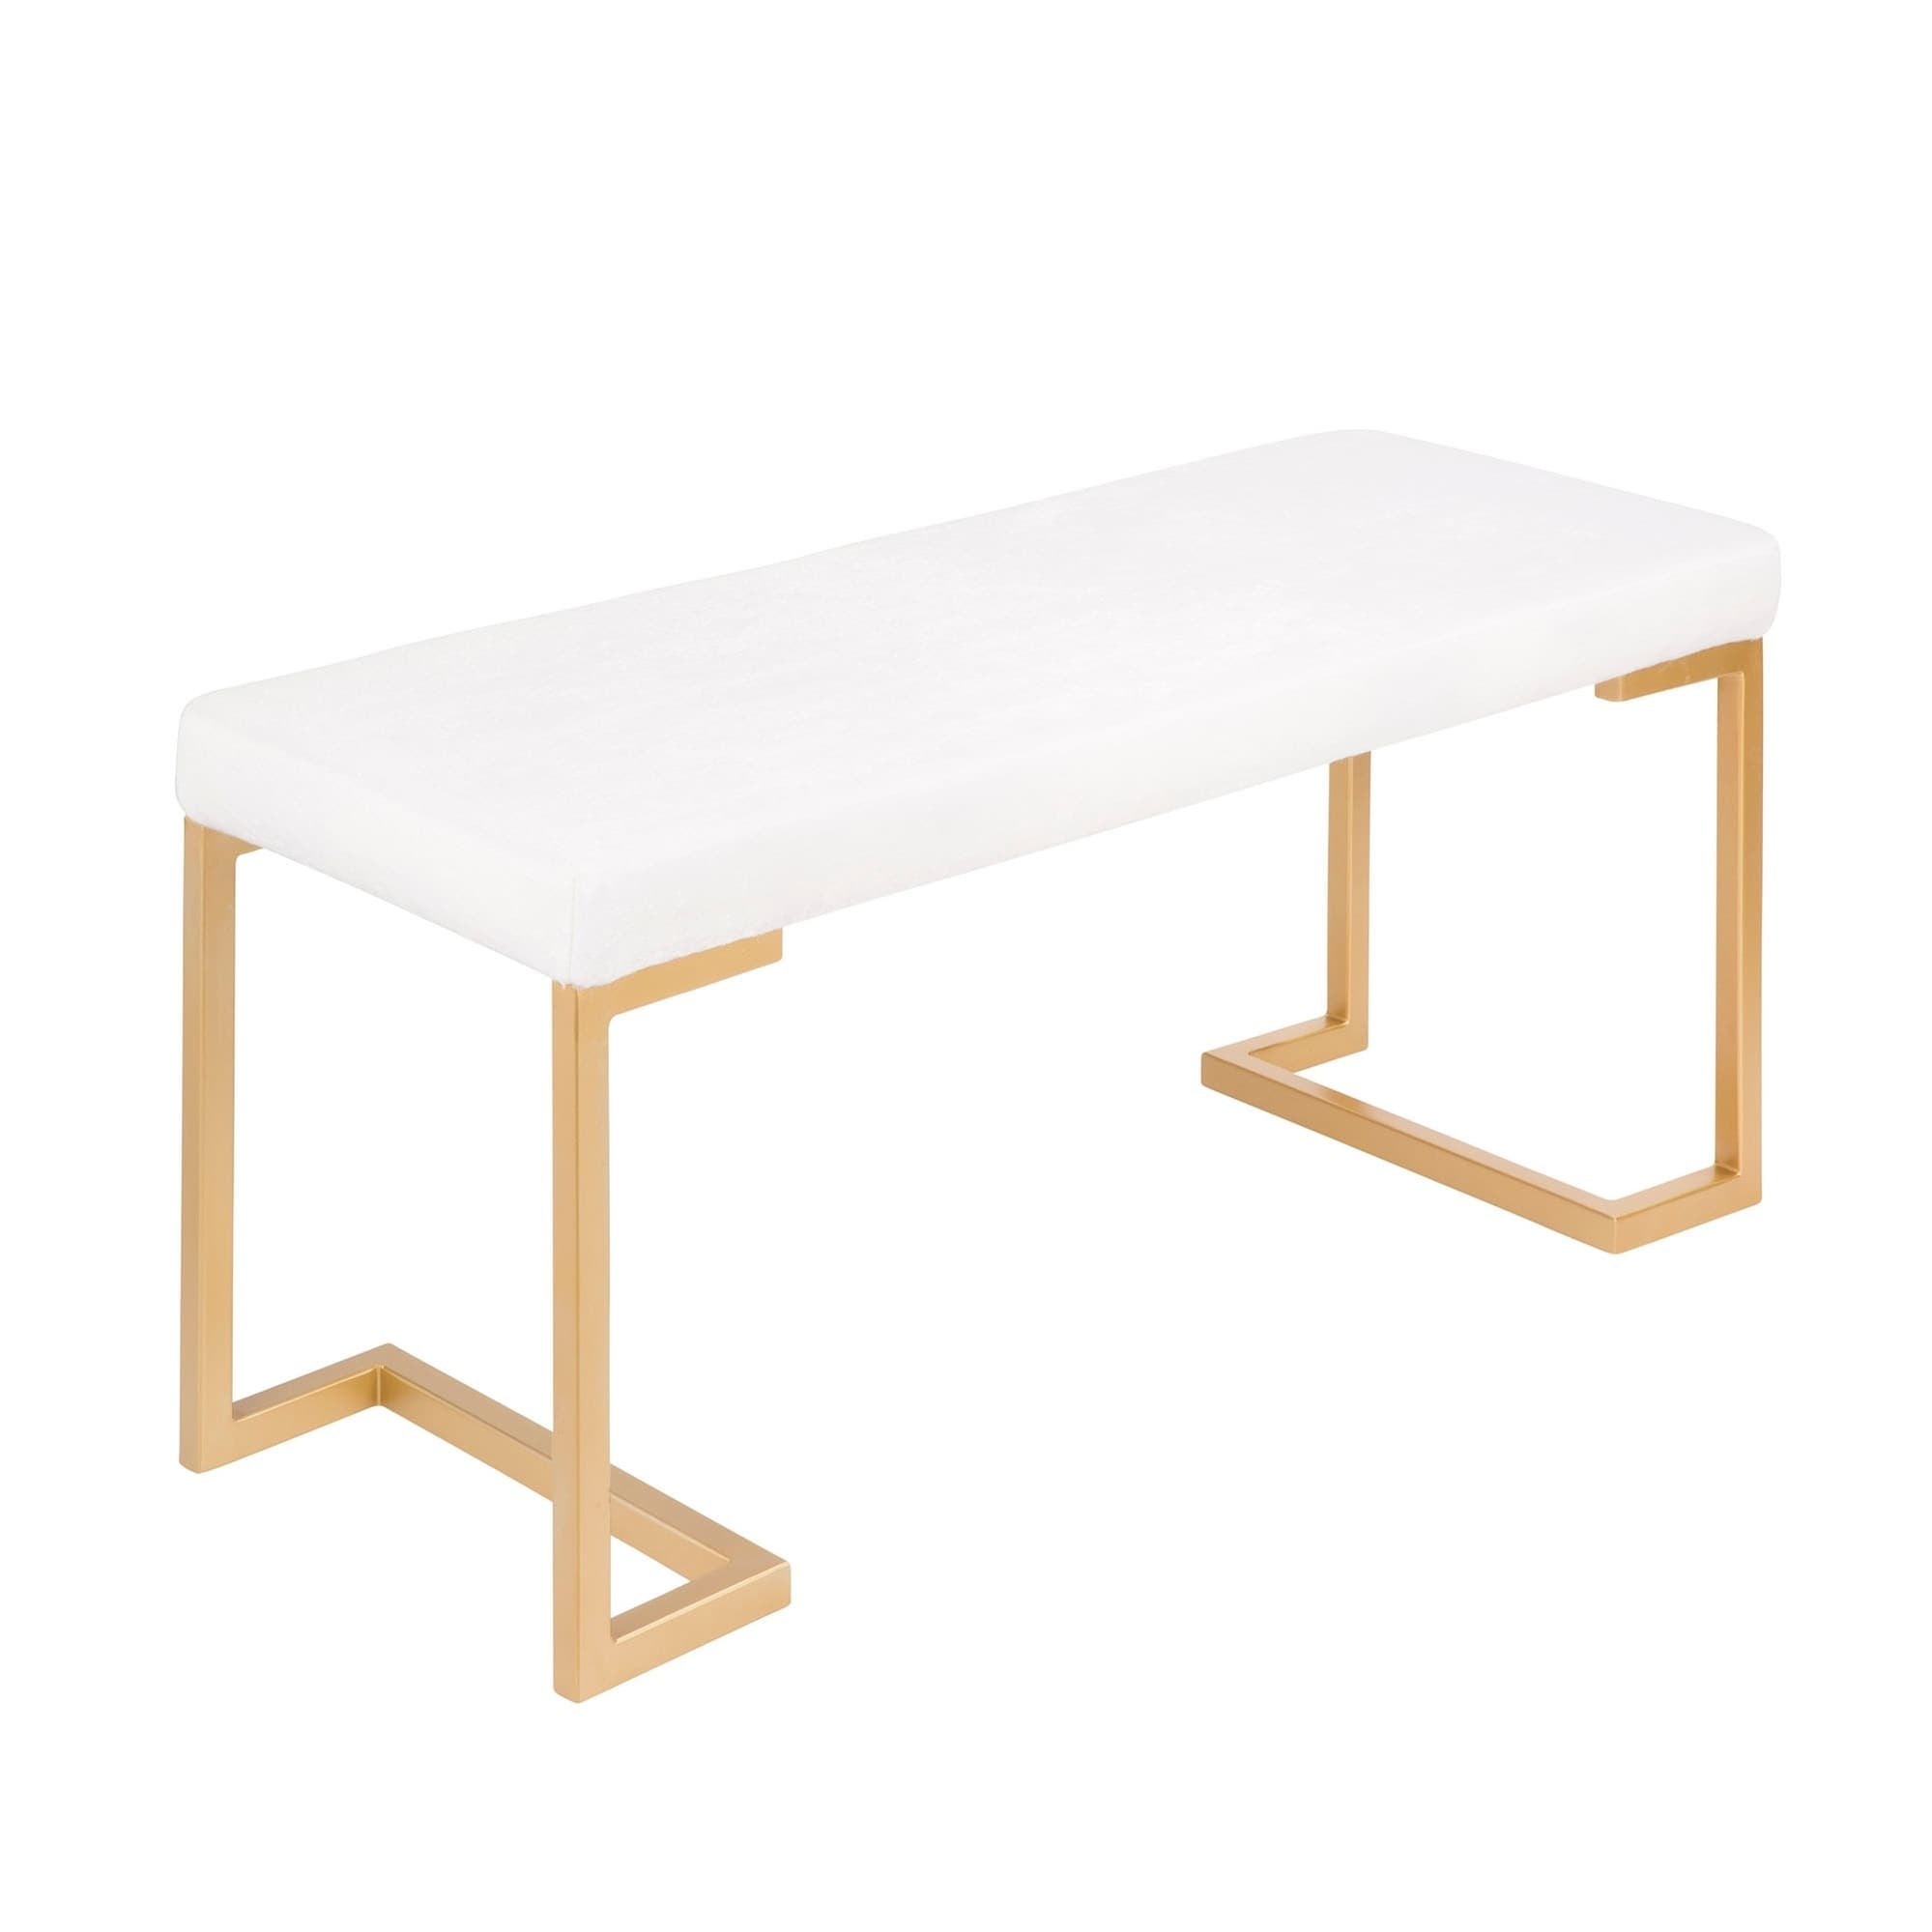 Admirable Midas Contemporary Glam Gold Dining Entryway Bench Dailytribune Chair Design For Home Dailytribuneorg